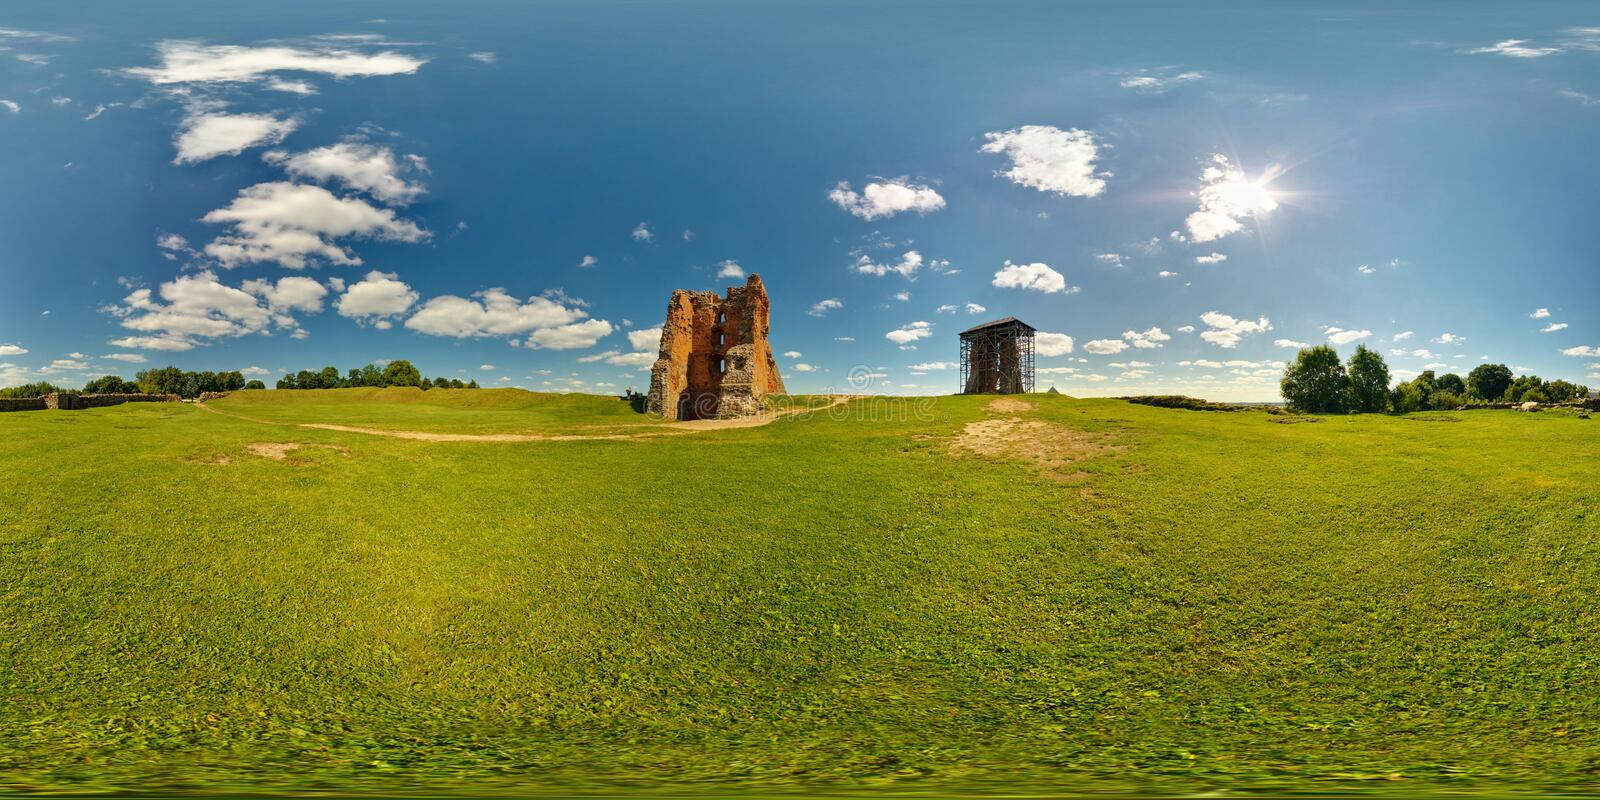 Full 360 panorama in equirectangular equidistant spherical projection of destroyed the ancient medieval castle on a sunny summer. Day, skybox for VR content royalty free stock image